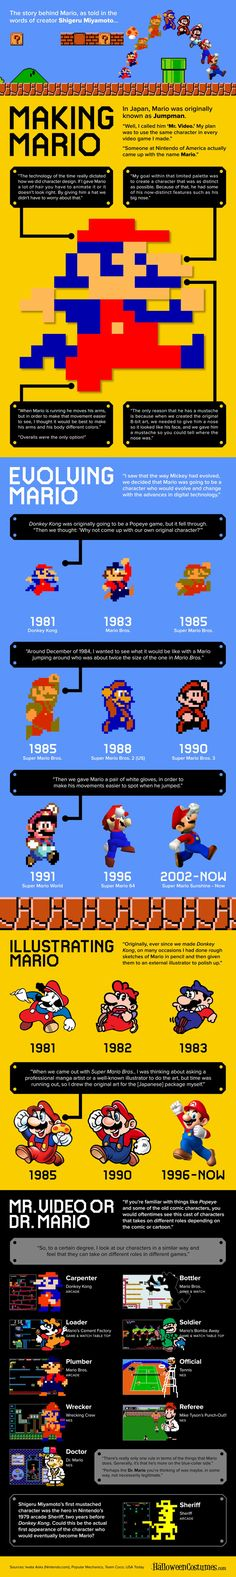 The Mario character is the most well-known video game protagonist in the world. Shigeru Miyamoto started a revolution in gaming and created some of the best video game series on this planet